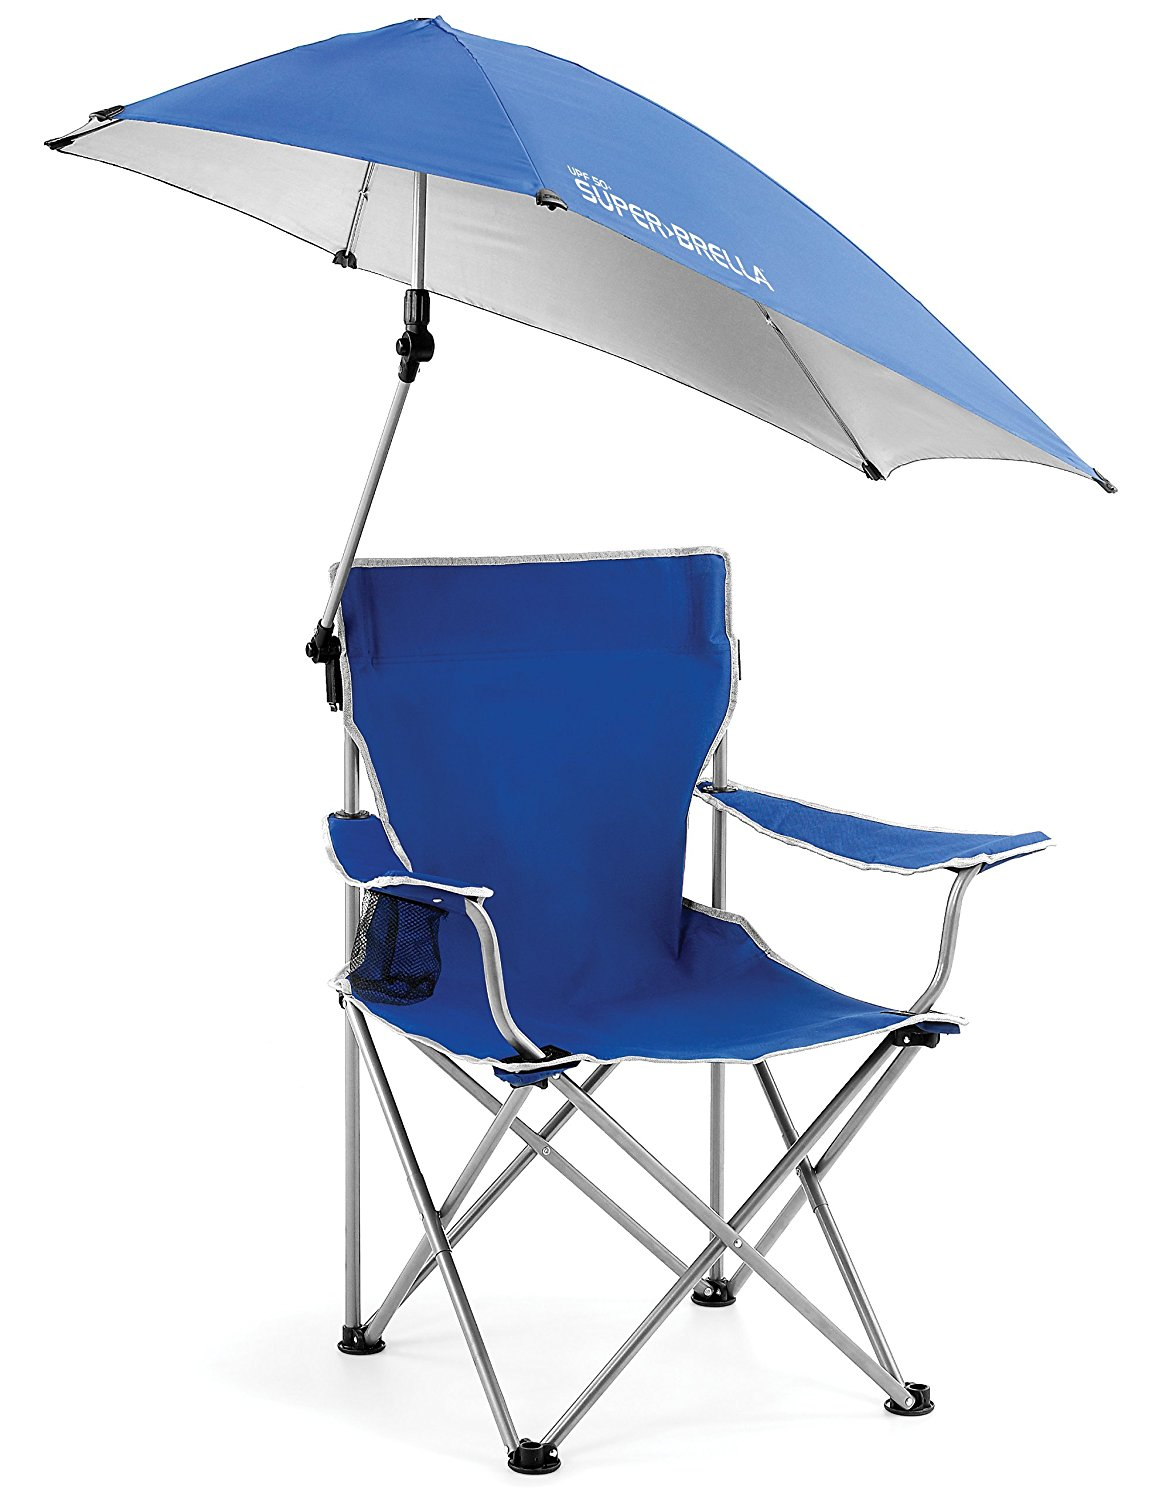 Outdoor Quik Shade Adjustable Canopy Folding Camp Chair